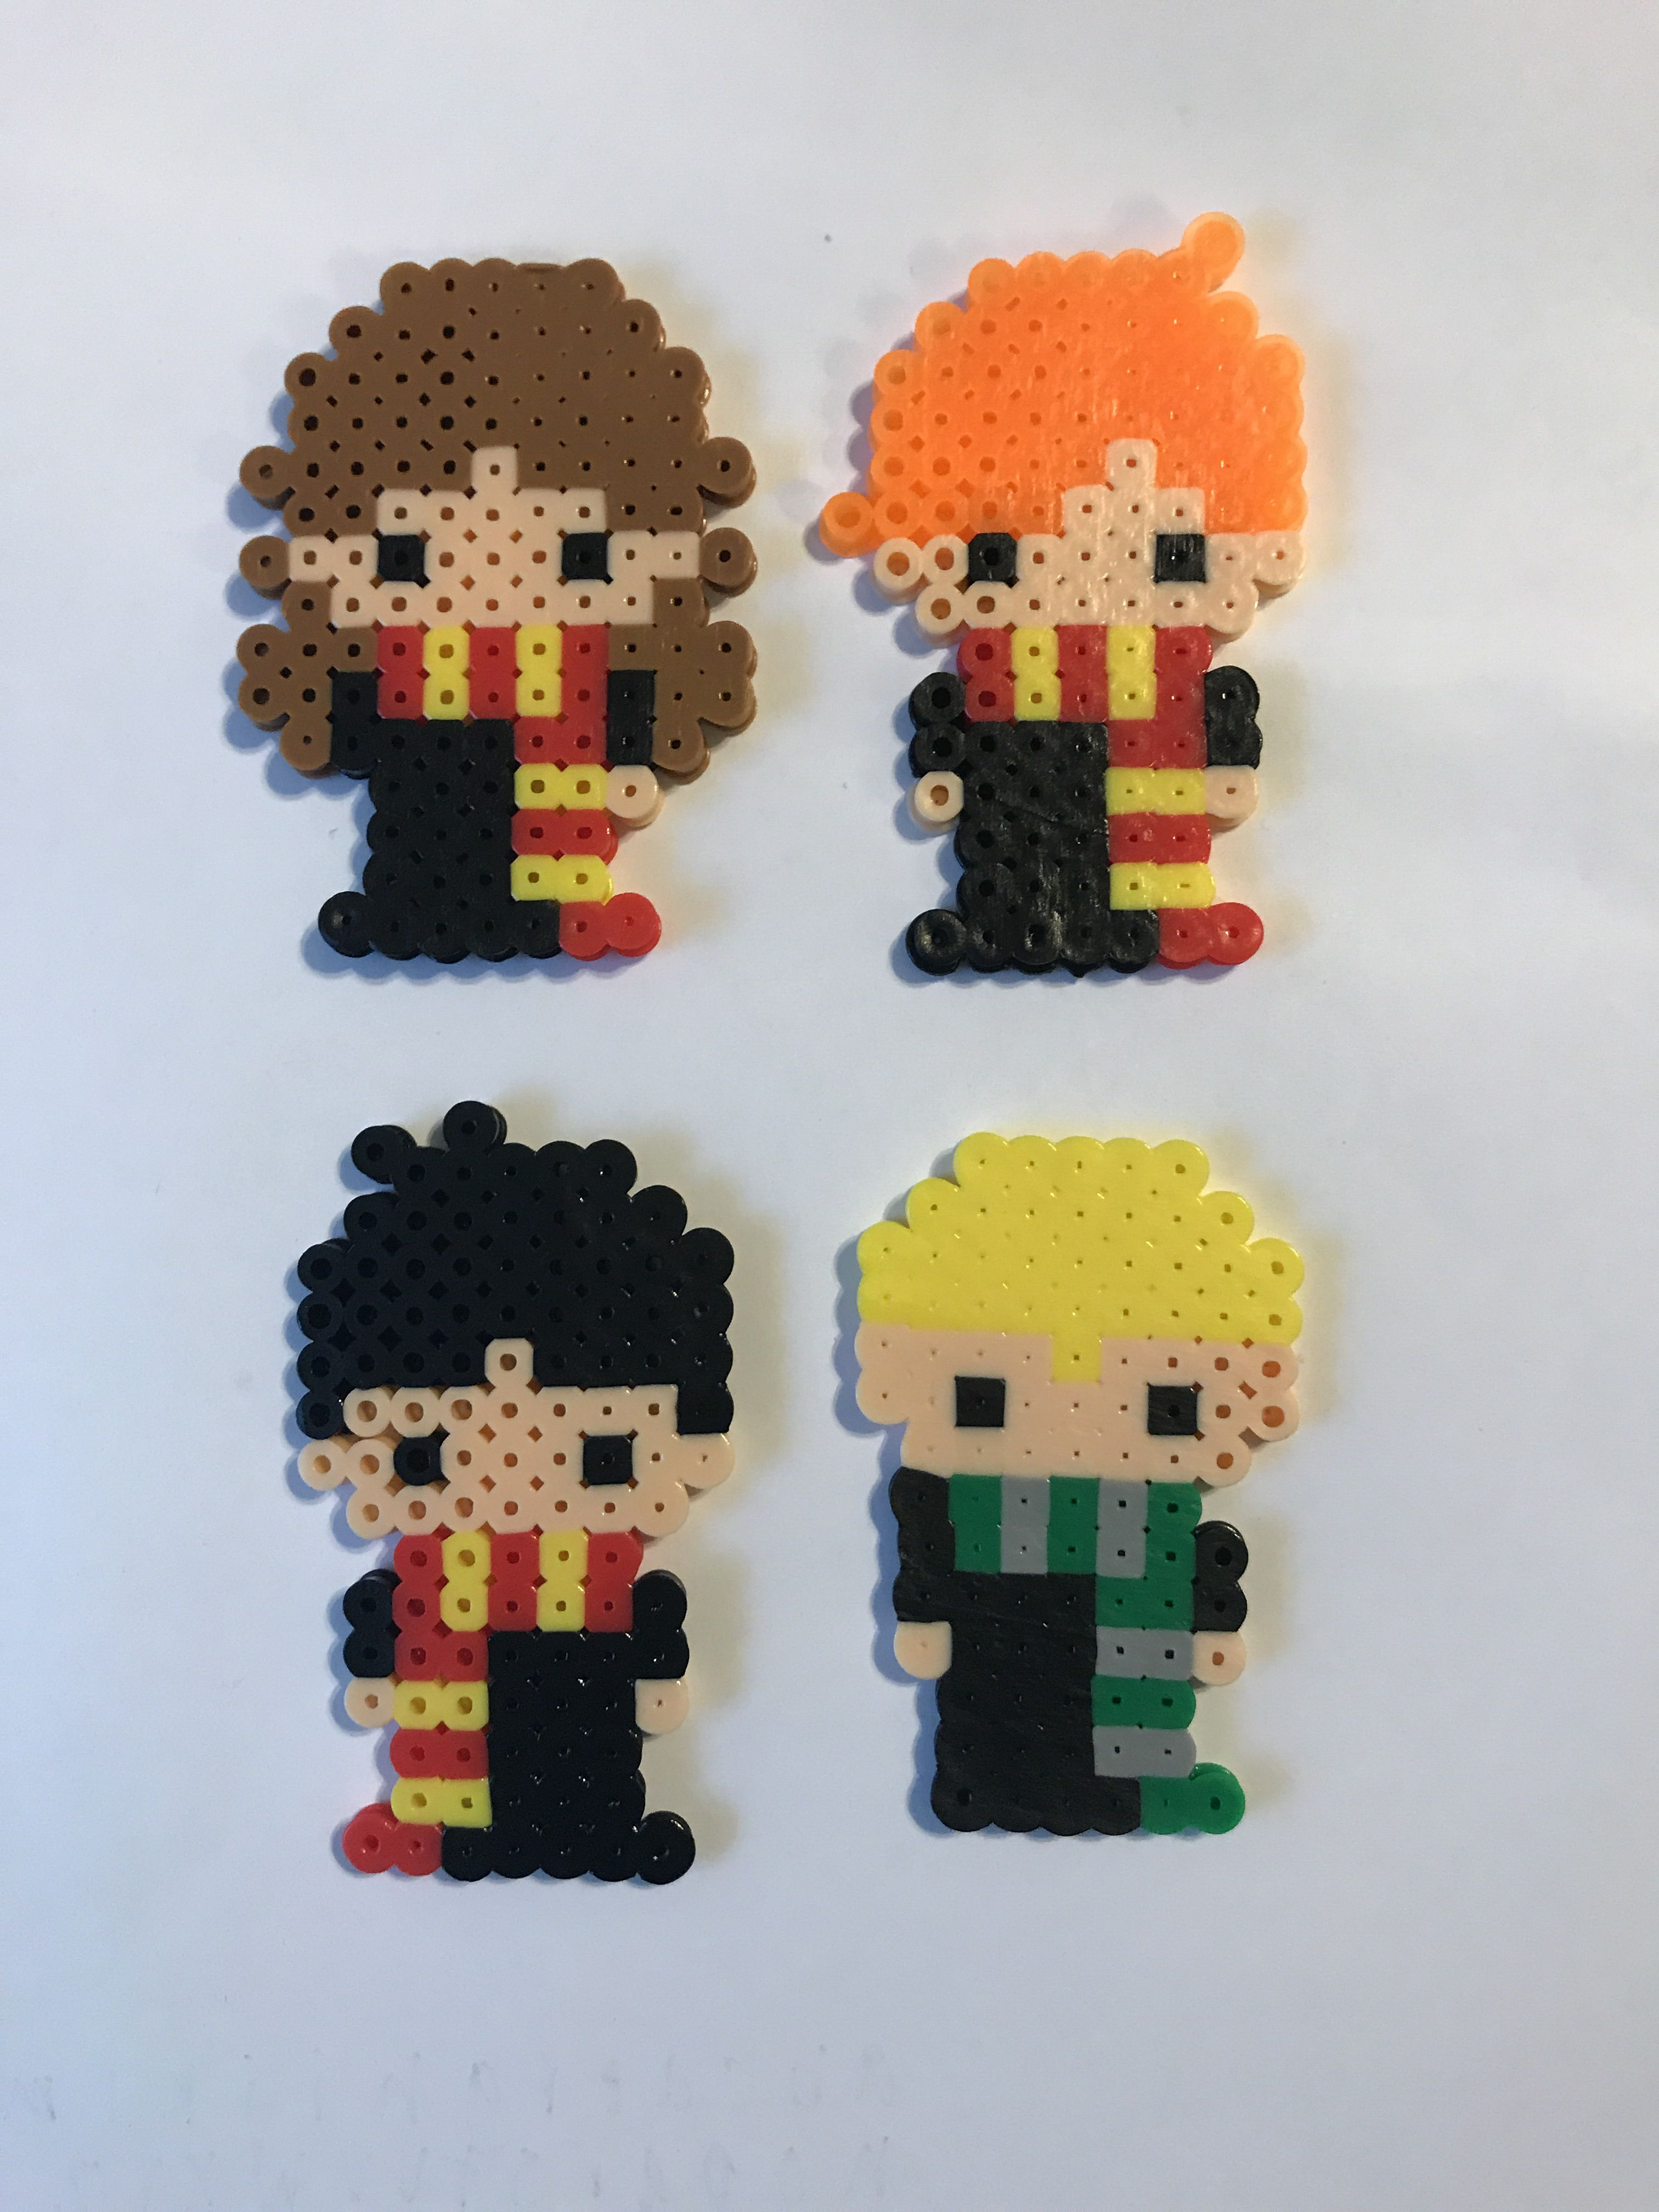 Harry Ron Hermione And Draco Perler Bead Patterns Harry Potter Perler Beads Hama Beads Design Easy Perler Bead Patterns Hello everyone, it is time for chapter six of year three of our magical journey walkthrough for harry potter: draco perler bead patterns